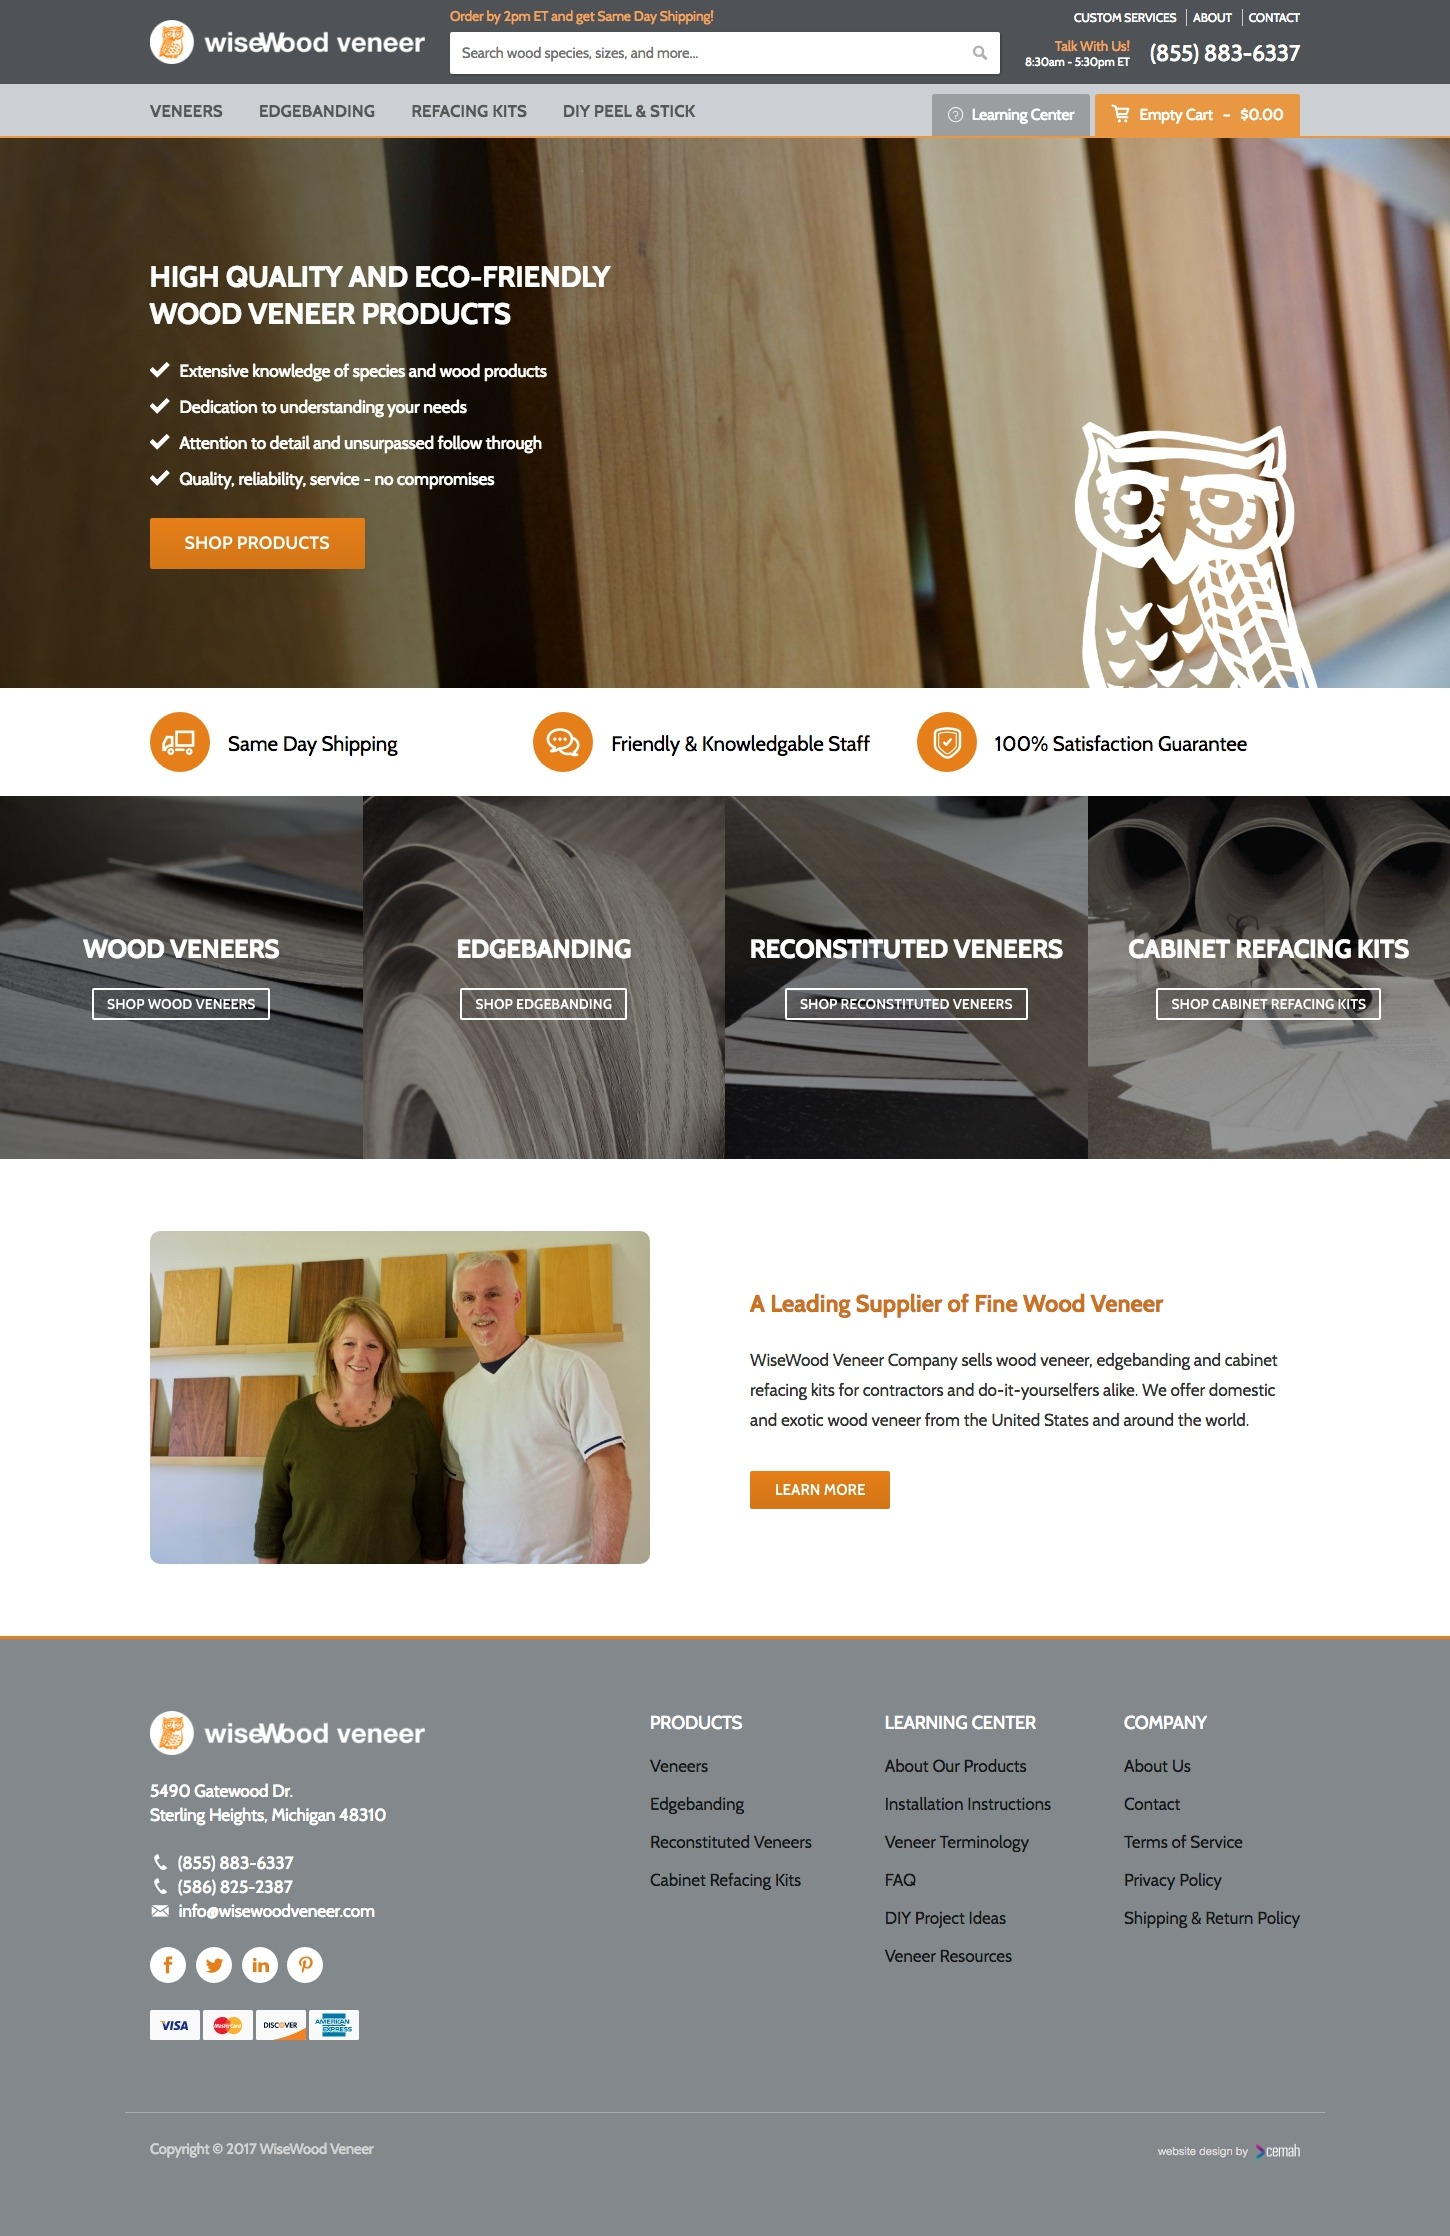 ECommerce website design layout featuring the homepage for a veneer supplier small business